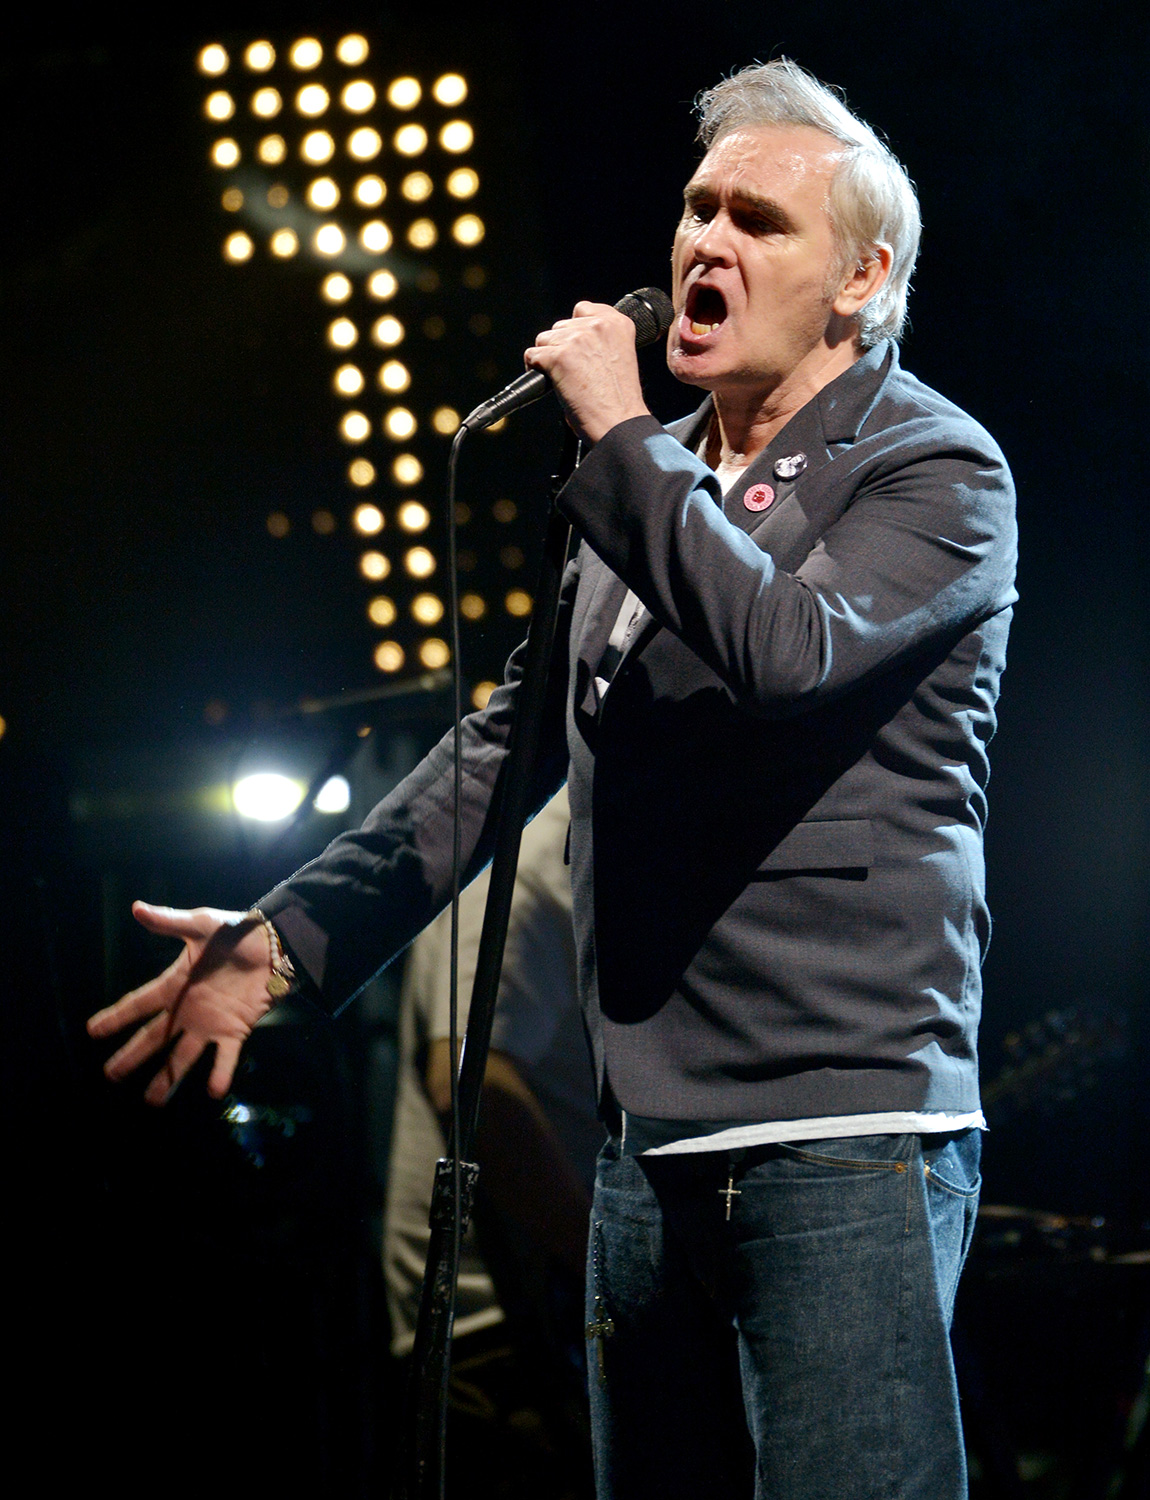 Morrissey performs live on stage at Wembley Arena on March 14, 2020 in London, England